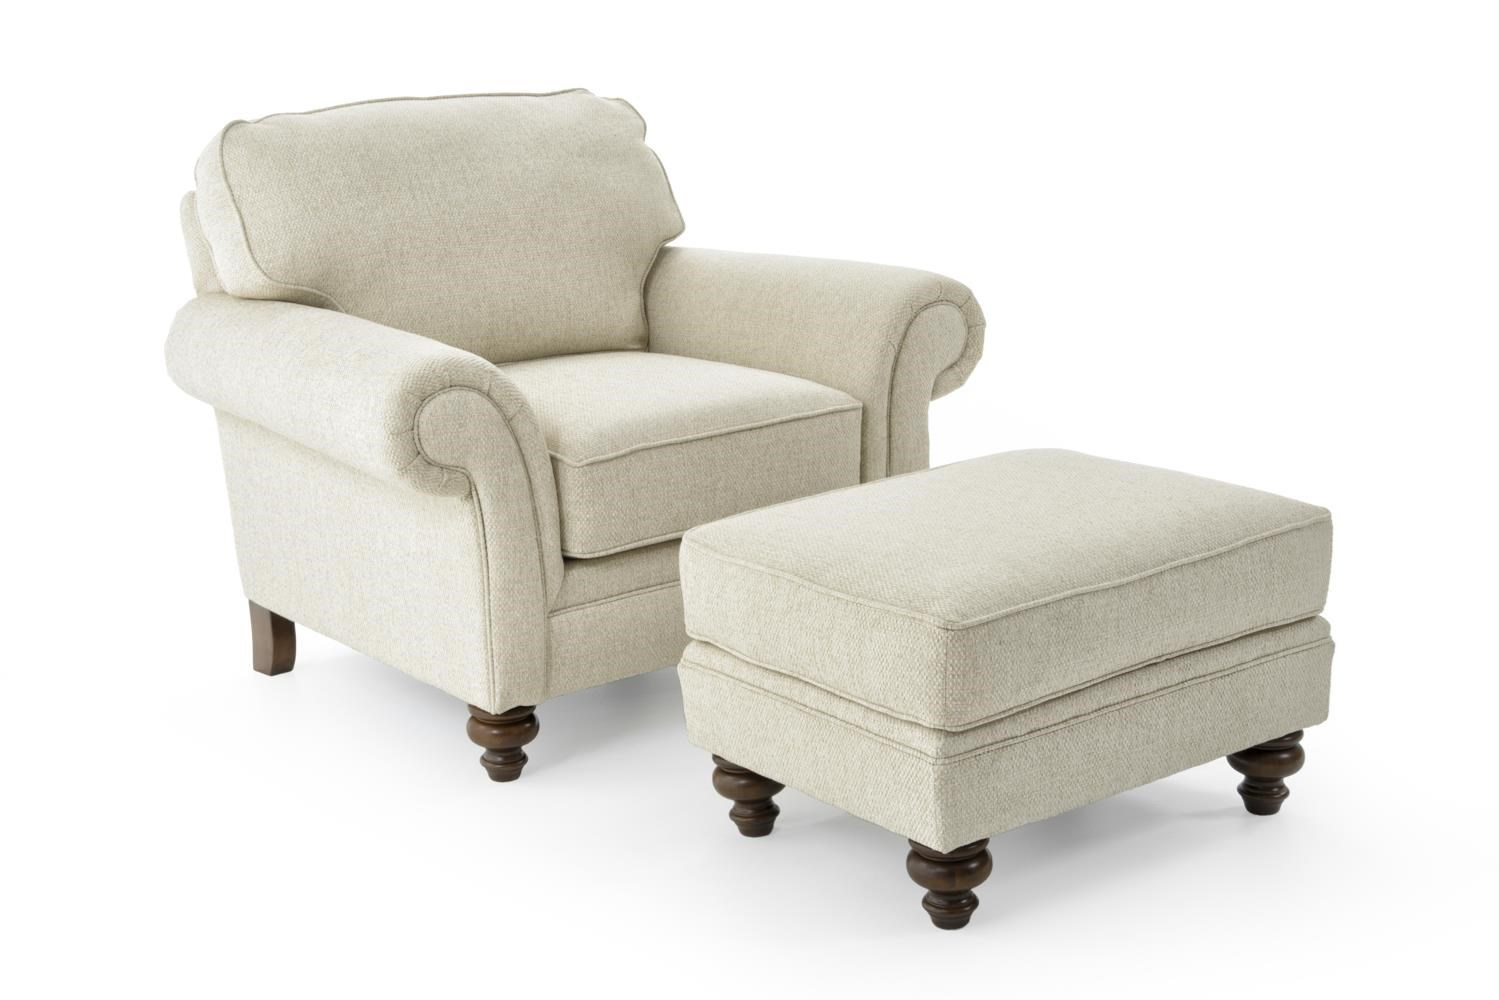 Broyhill Furniture Larissa 6112 5 6112 0 Traditional Stationary Chair And Ottoman With Turned